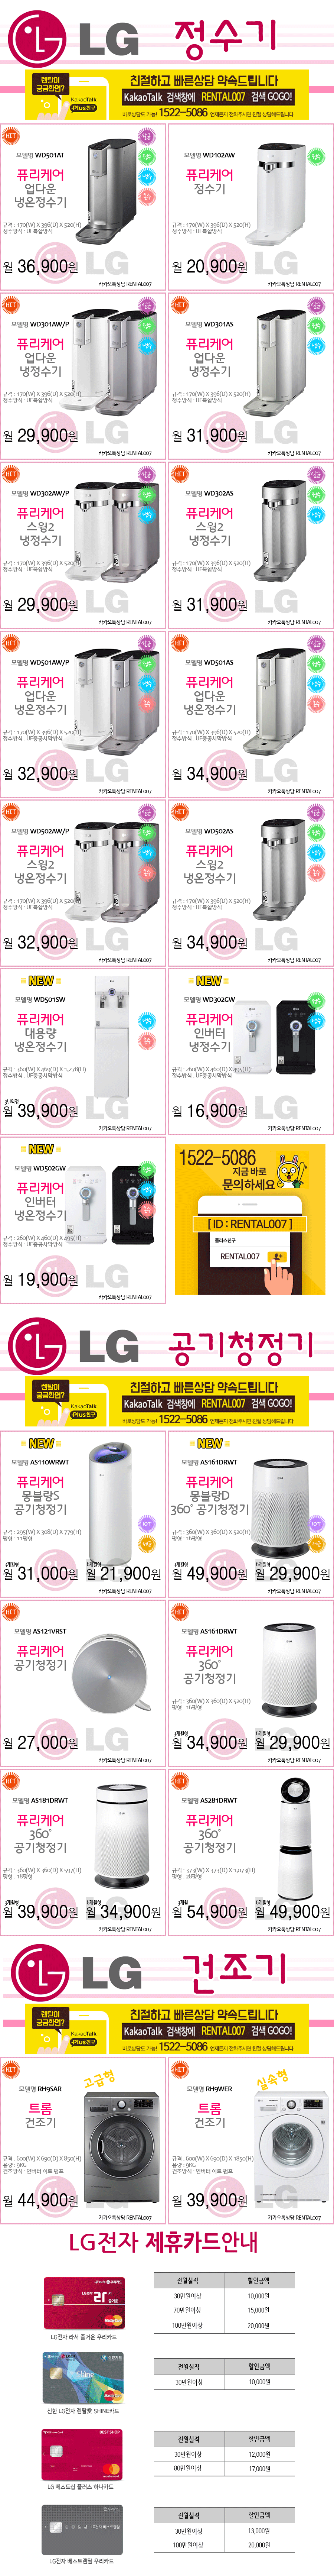 P-171207-LG-001.png